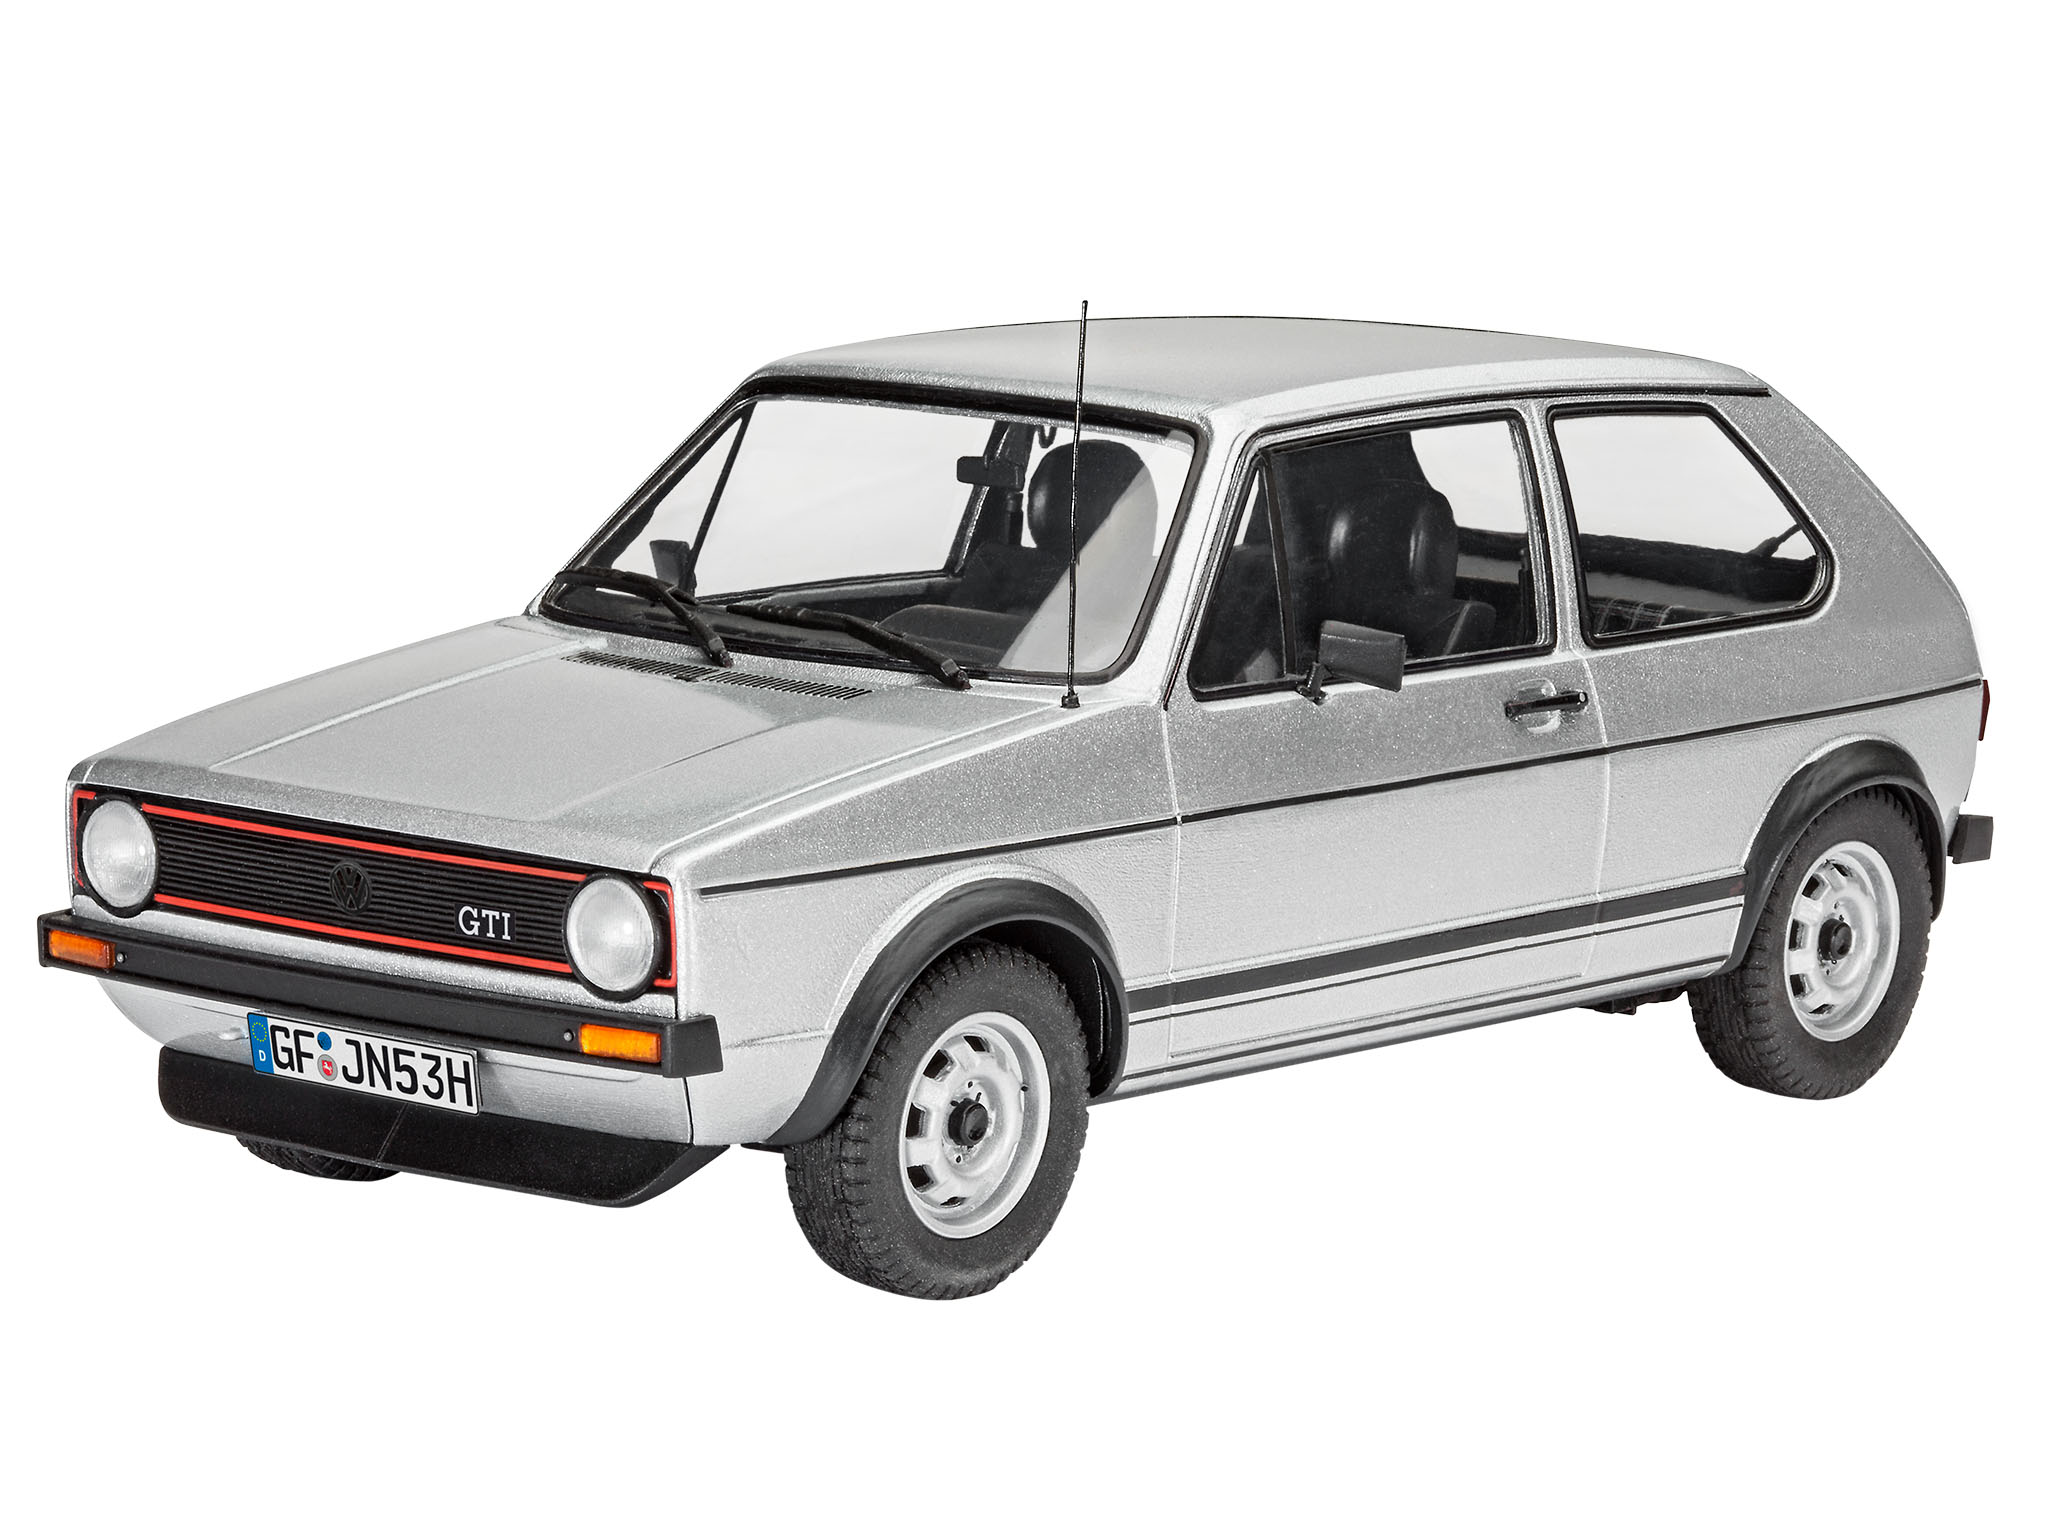 revell vw golf 1 gti. Black Bedroom Furniture Sets. Home Design Ideas